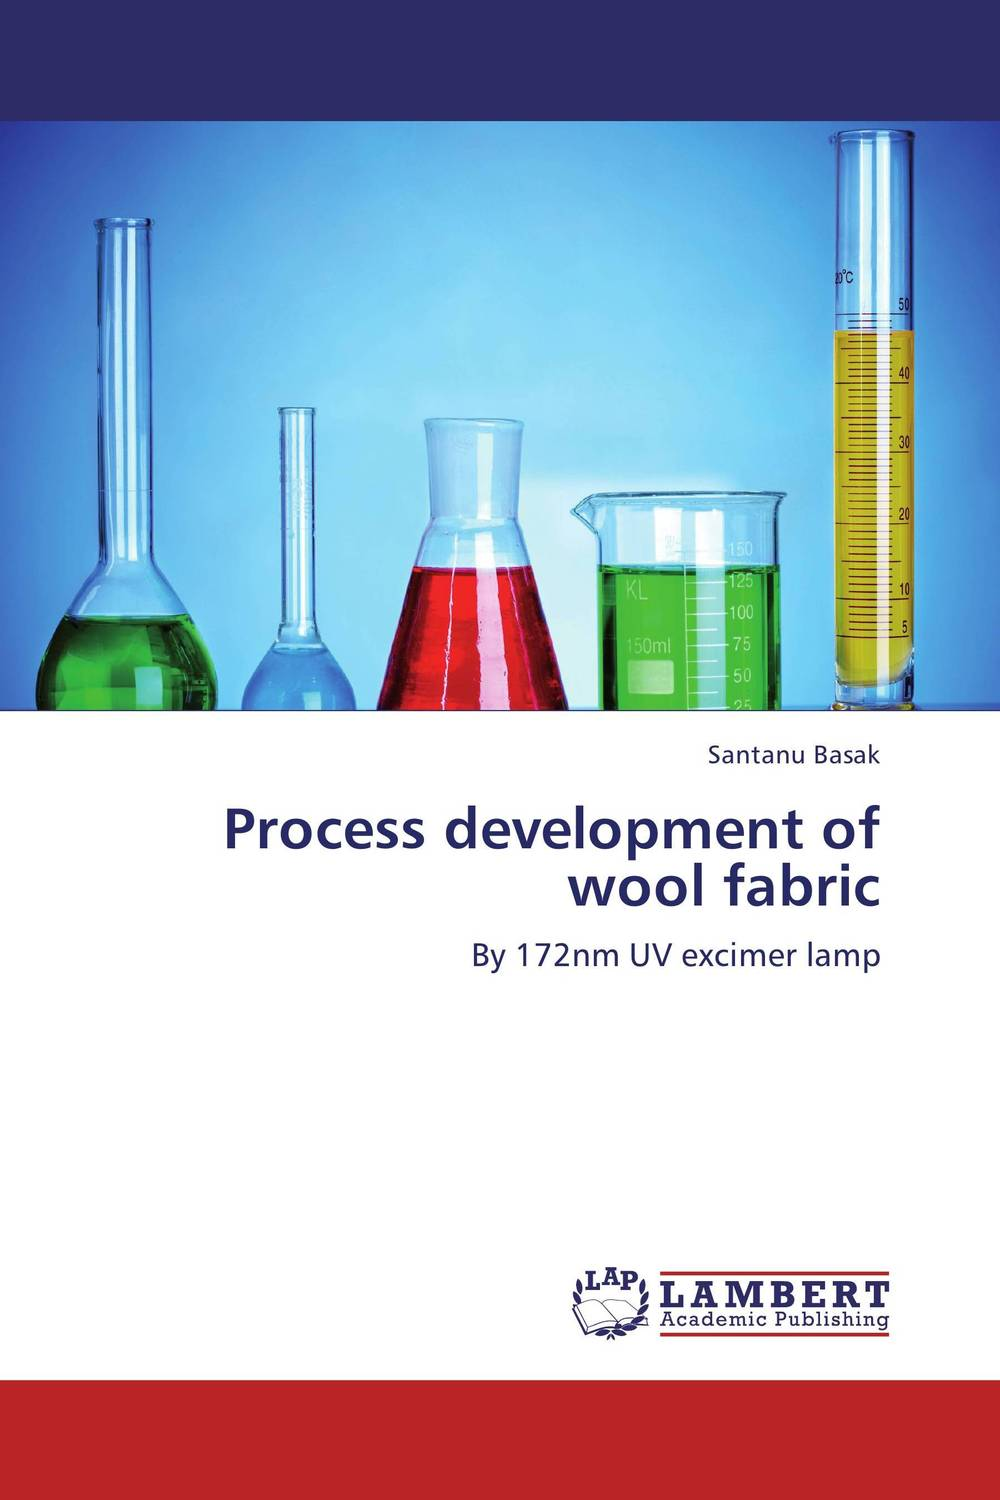 Process development of wool fabric belousov a security features of banknotes and other documents methods of authentication manual денежные билеты бланки ценных бумаг и документов